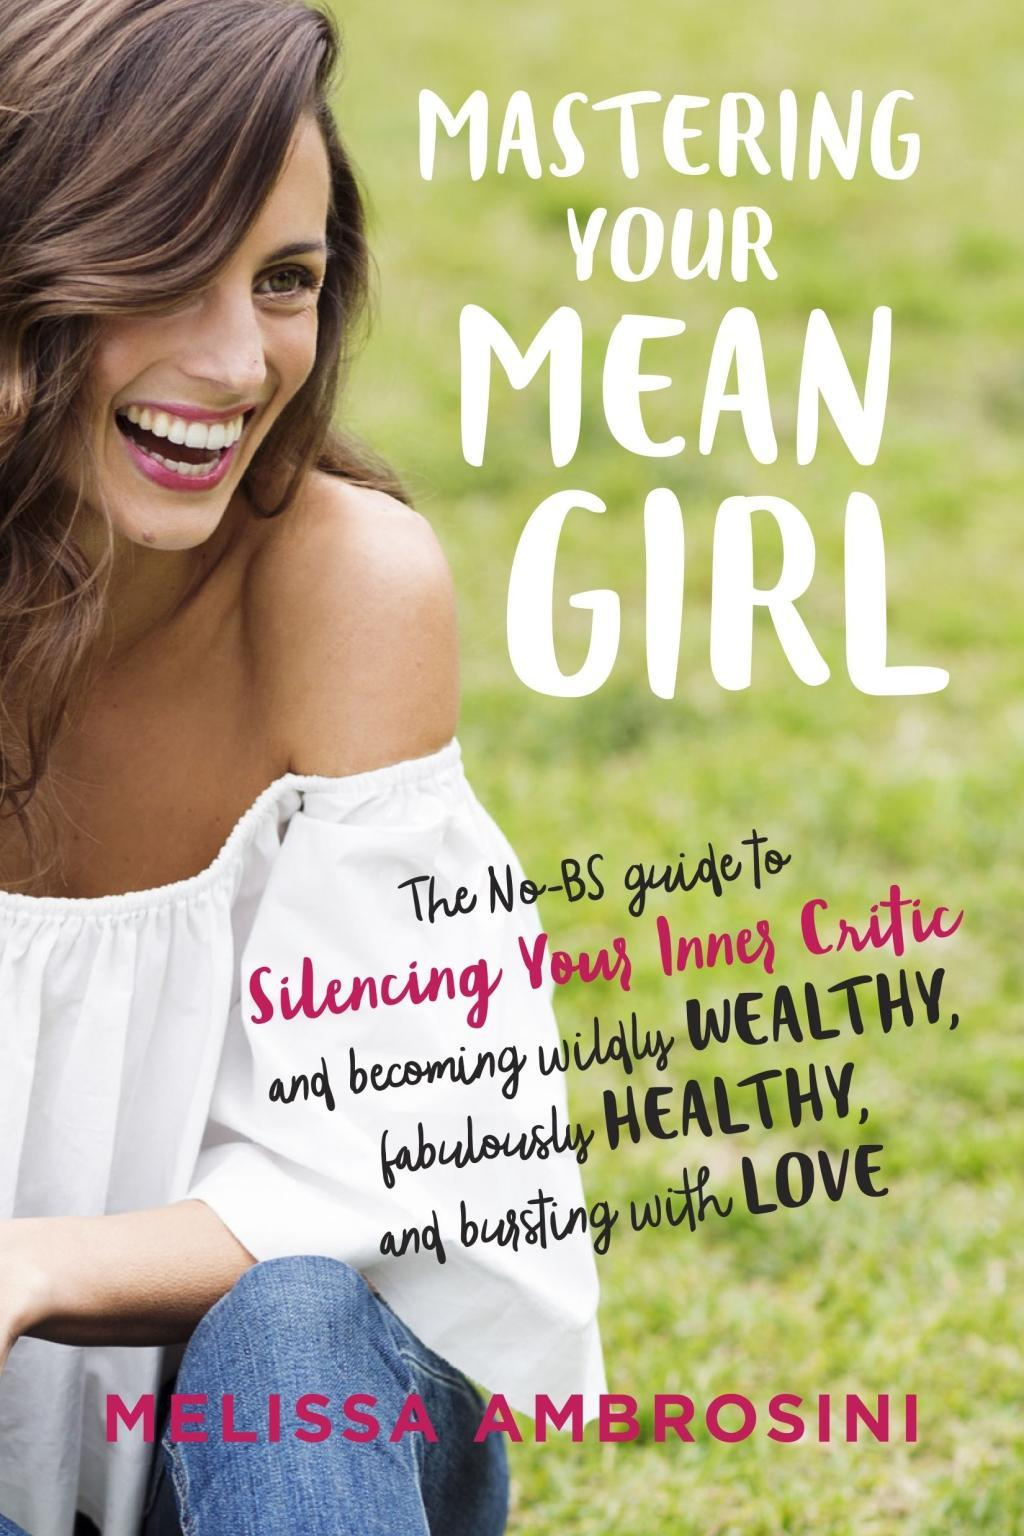 Mastering Your Mean Girl by Melissa Ambrosini, ISBN: 9780399176715